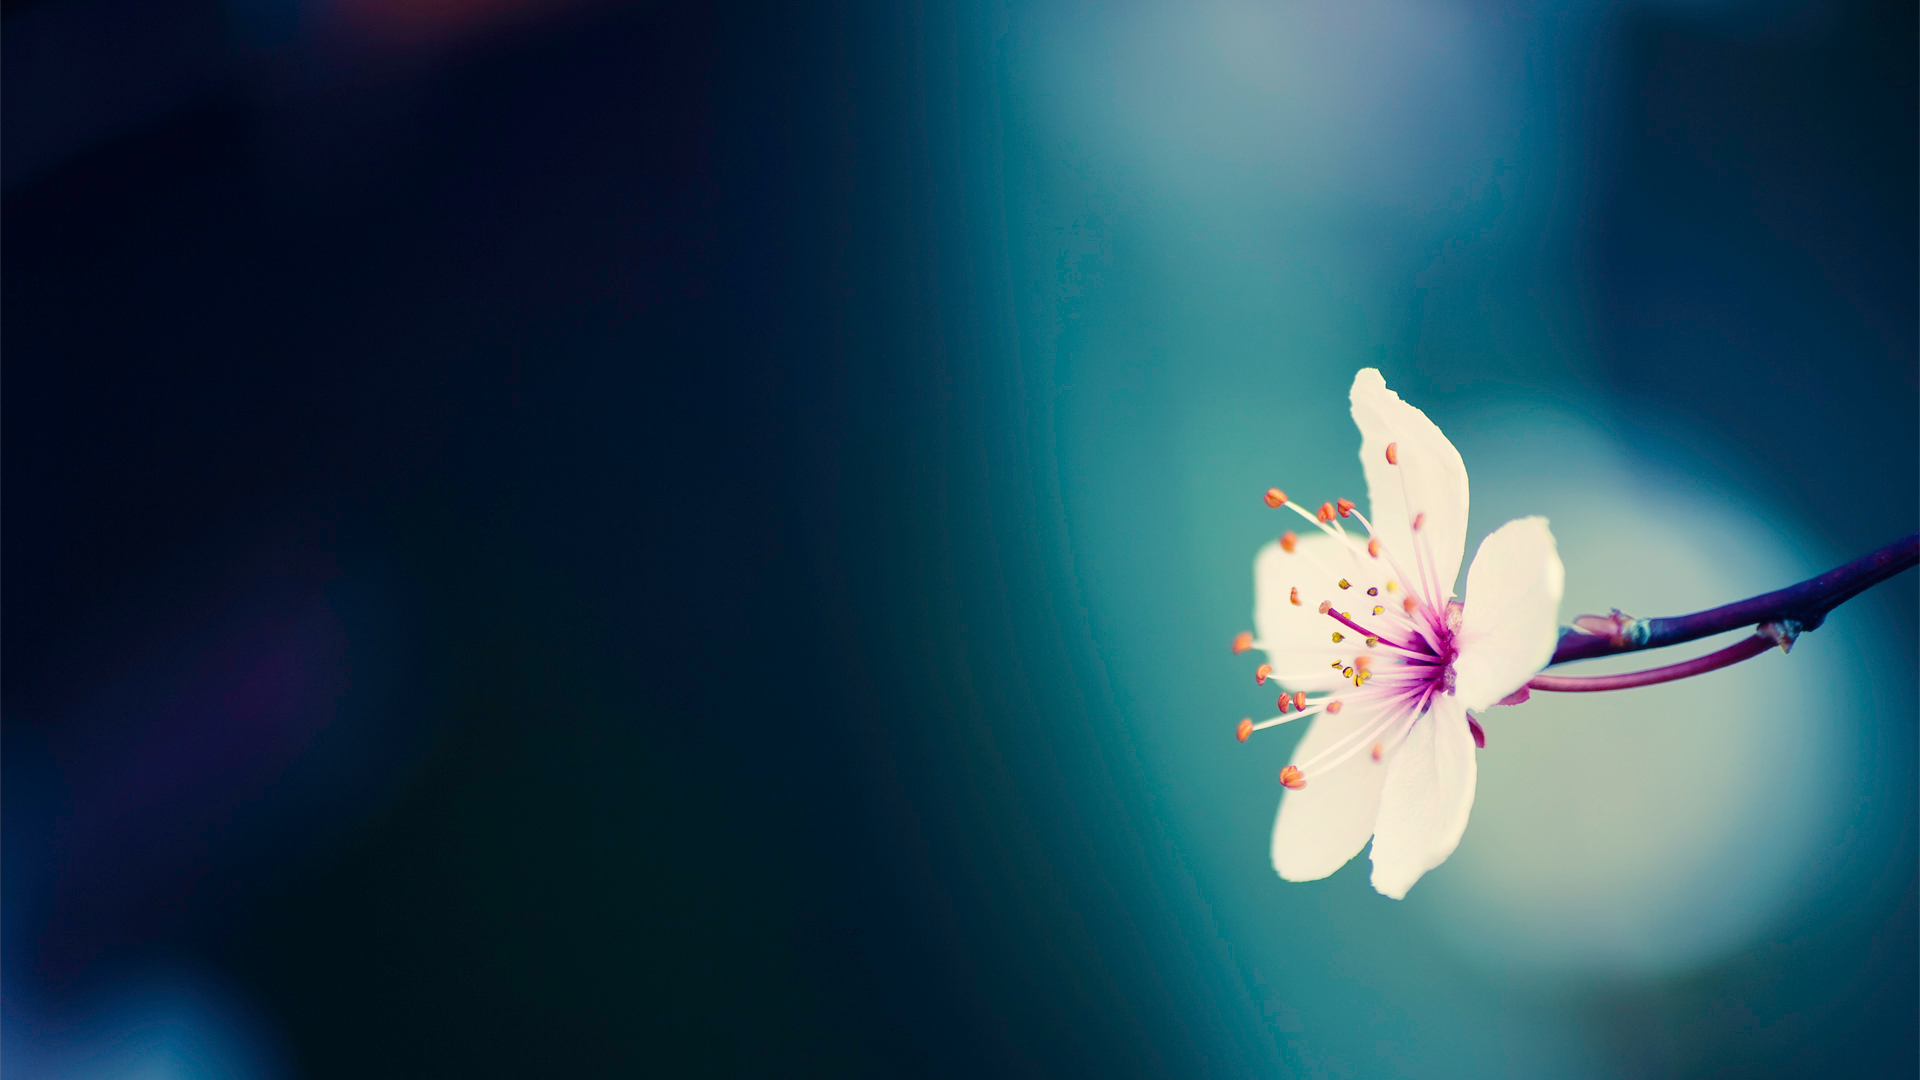 11 amazing flower wallpapers to add a splash of color to your devices mightylinksfo